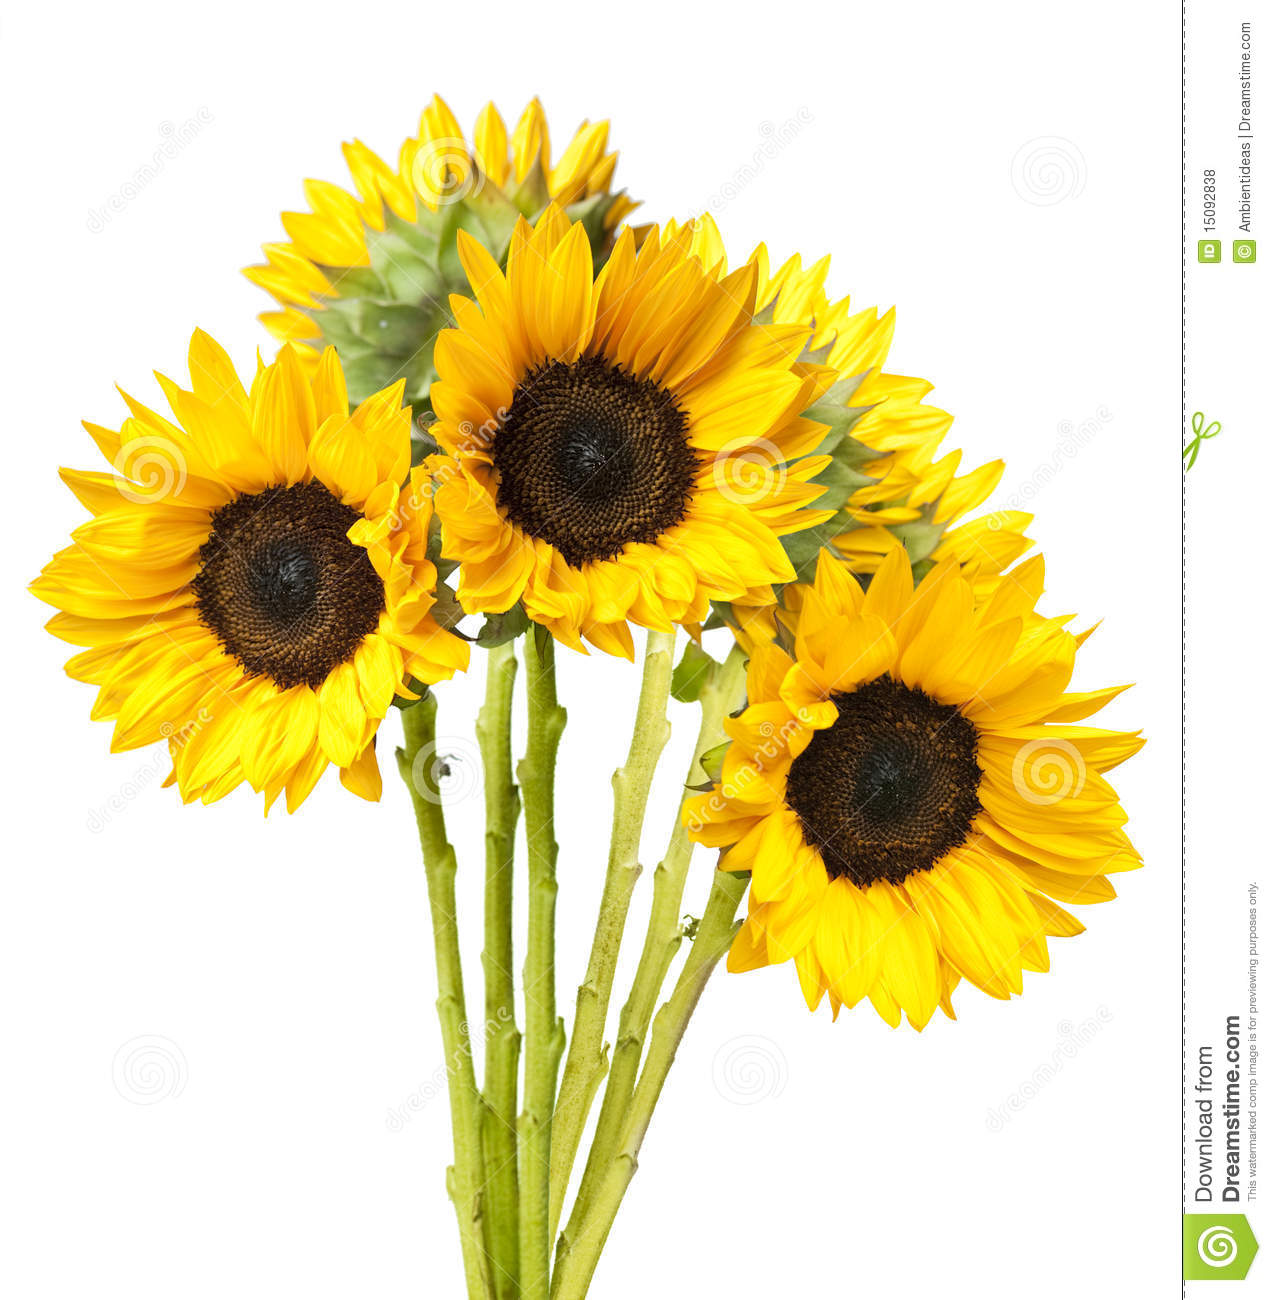 Sunflower Thank You Clipart - Clipart Kid